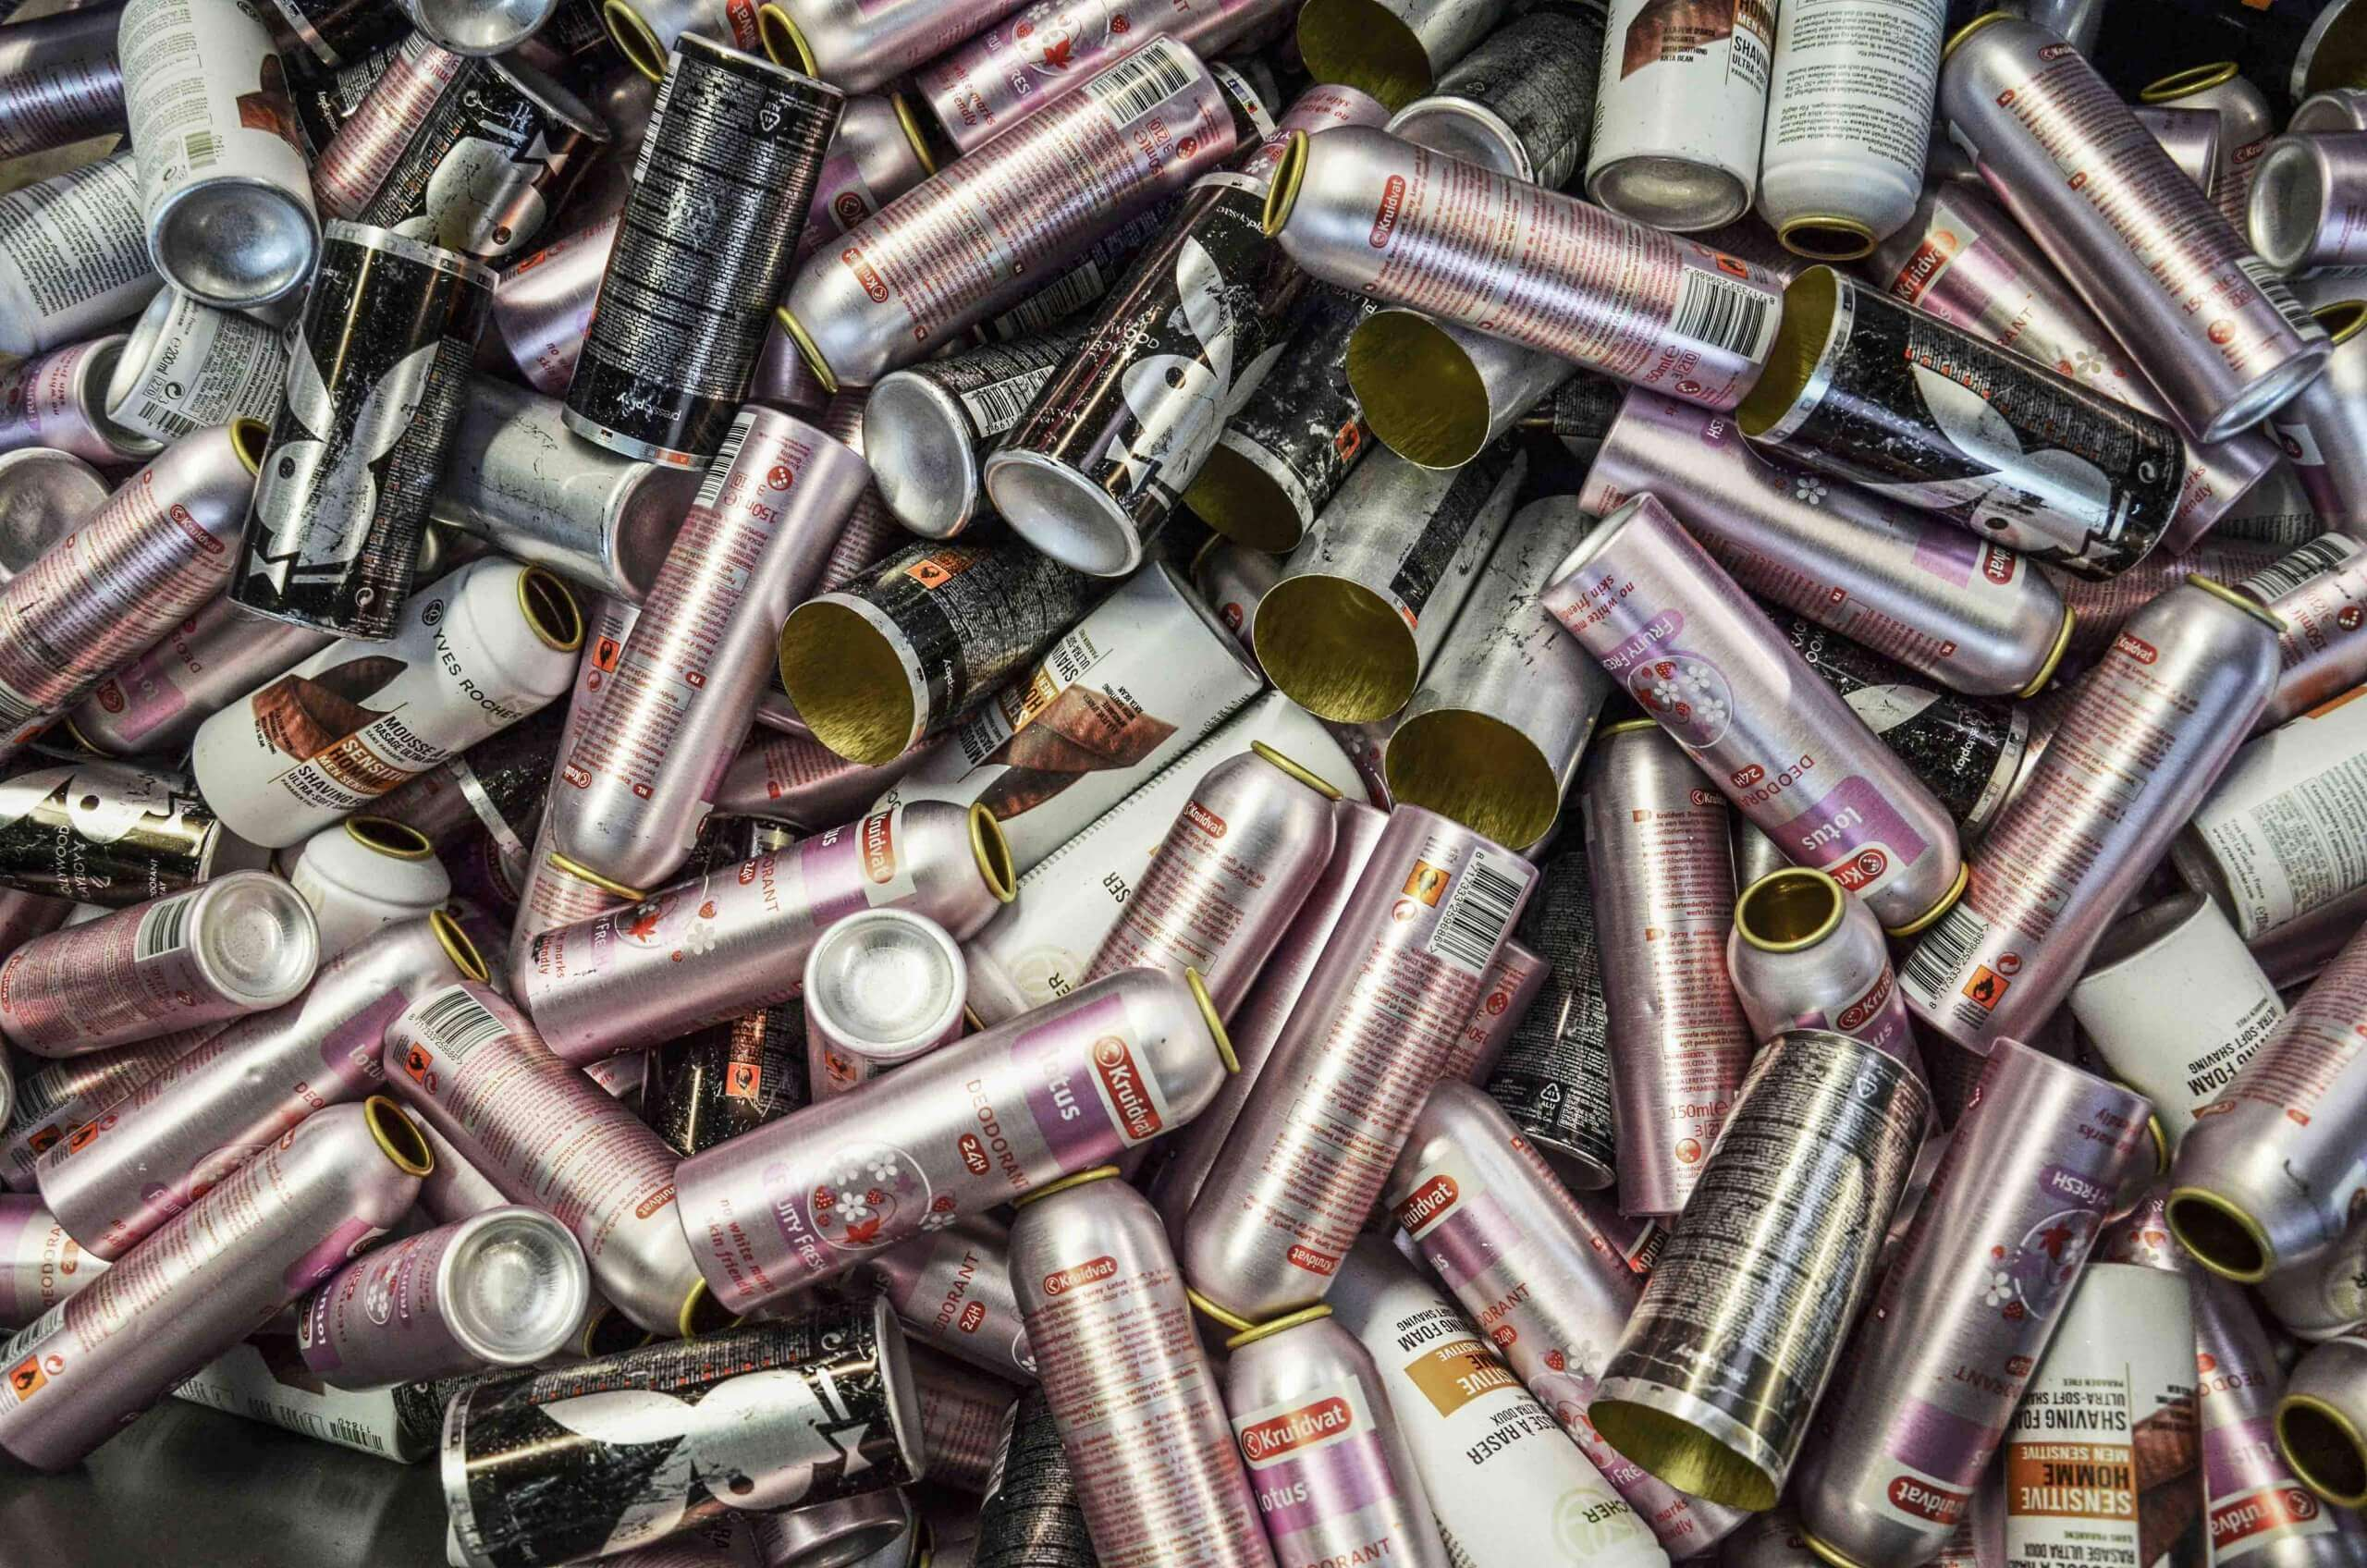 Deodorant cans in a pile